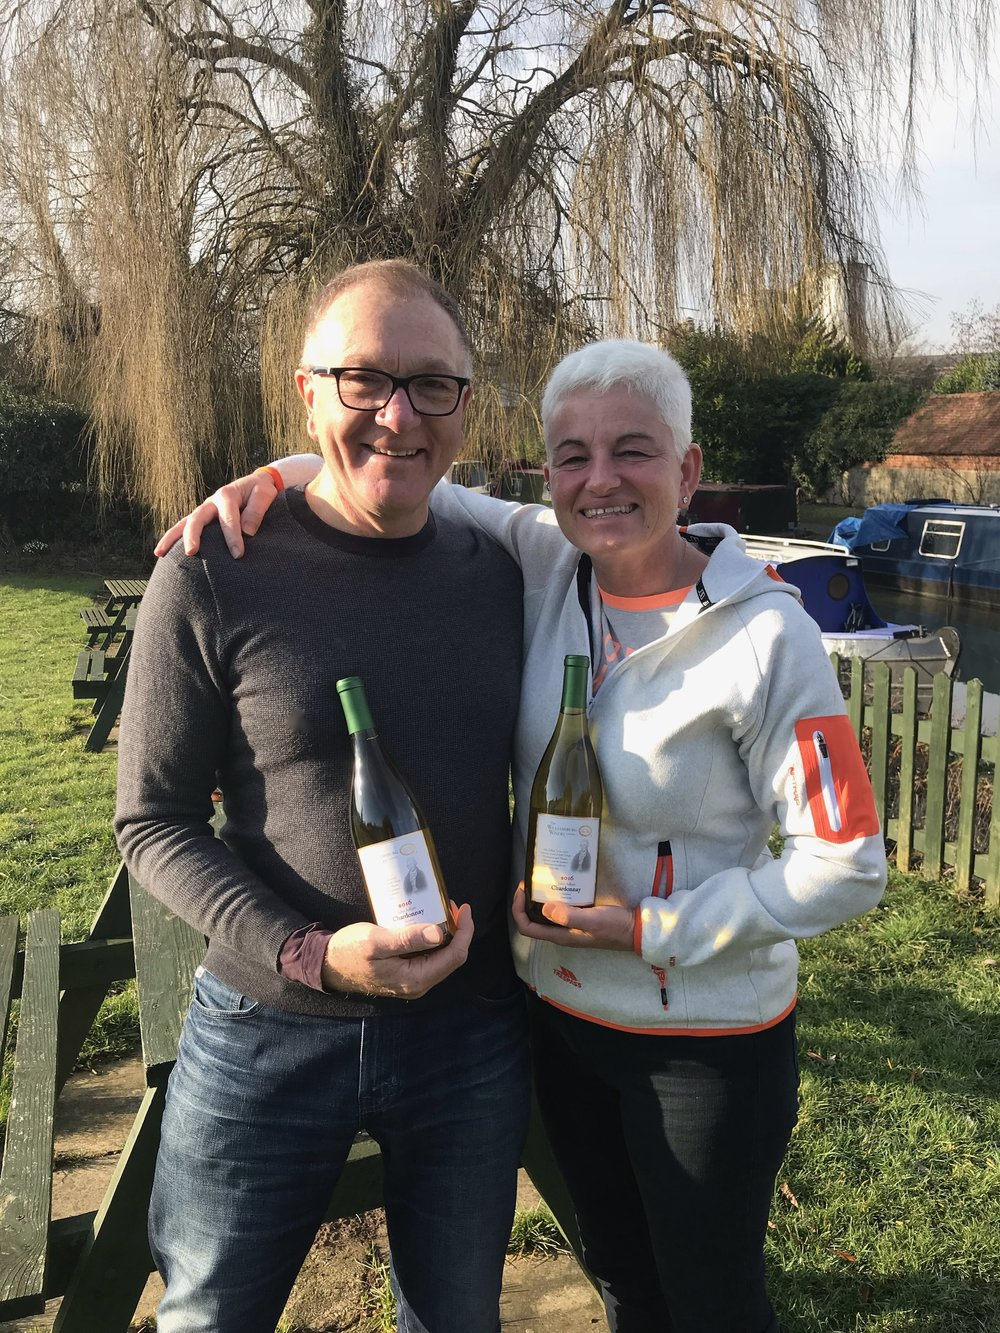 Adlum across the ocean….delighted to meet Jackie Adlum at Kidlington, Oxford to hand deliver Williamsburg Winery John Adlum Chardonnay.